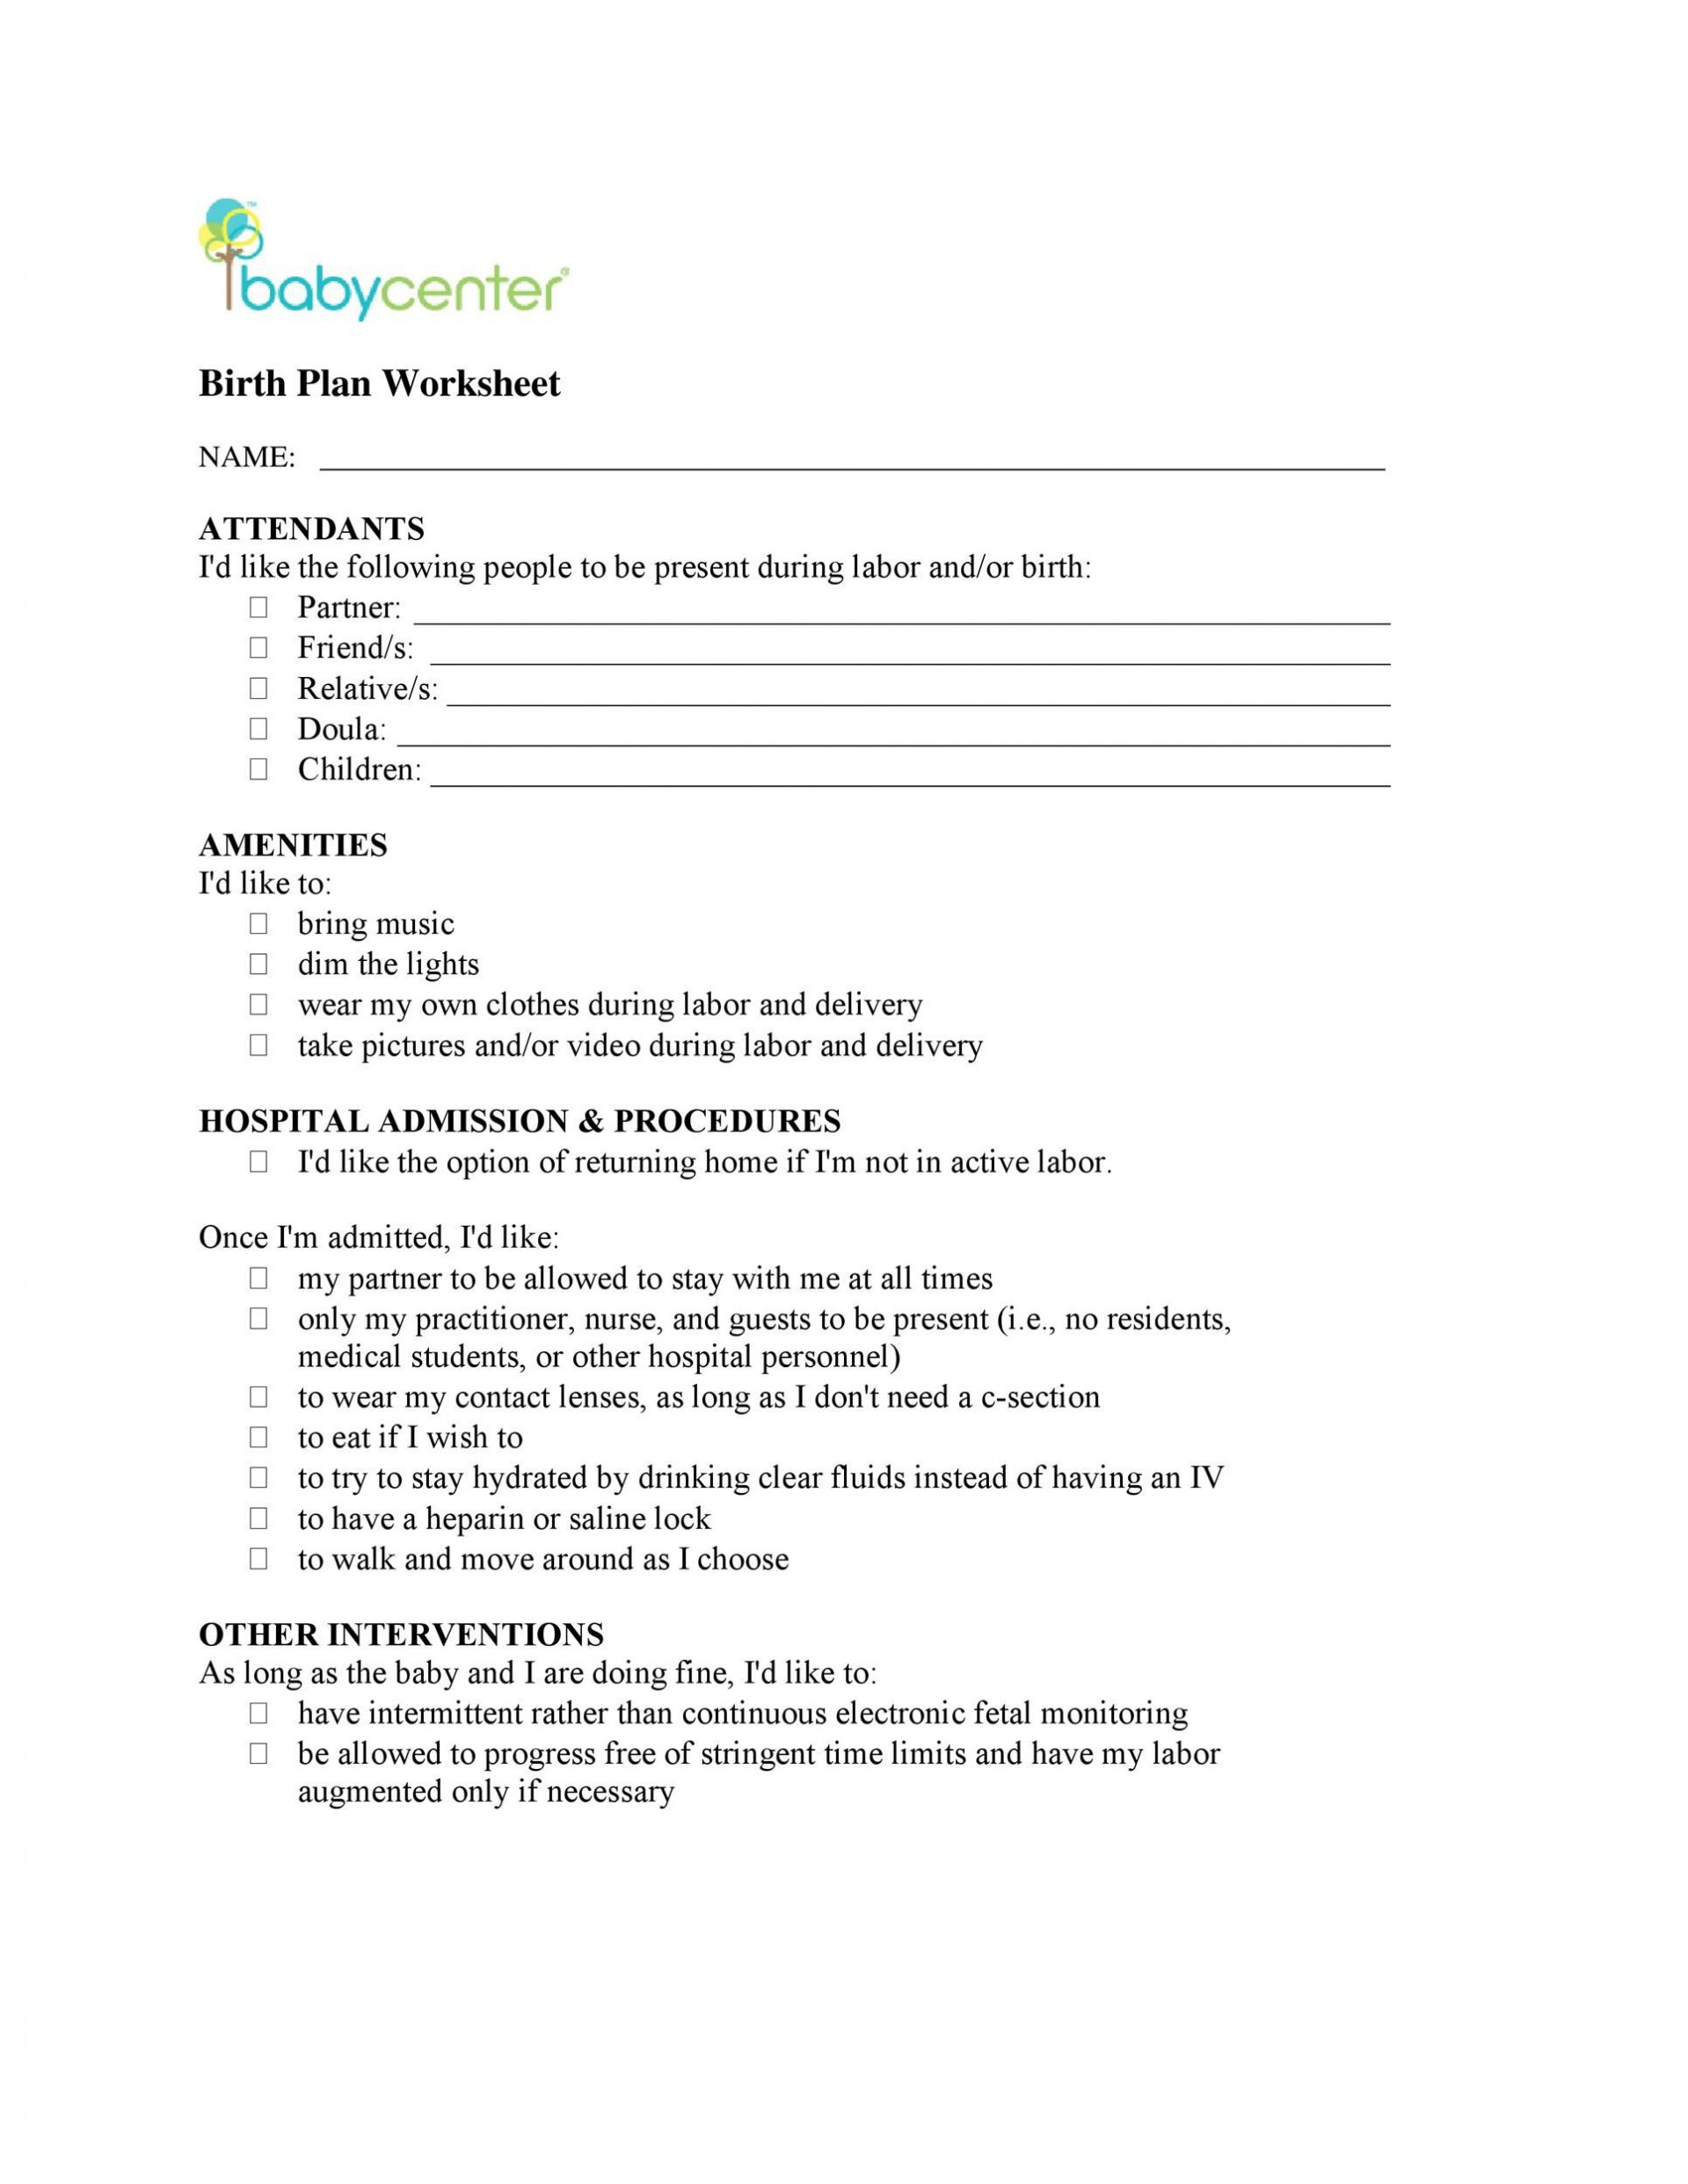 003 Remarkable Printable Birth Plan Template Highest Clarity  Editable Pdf Free1920